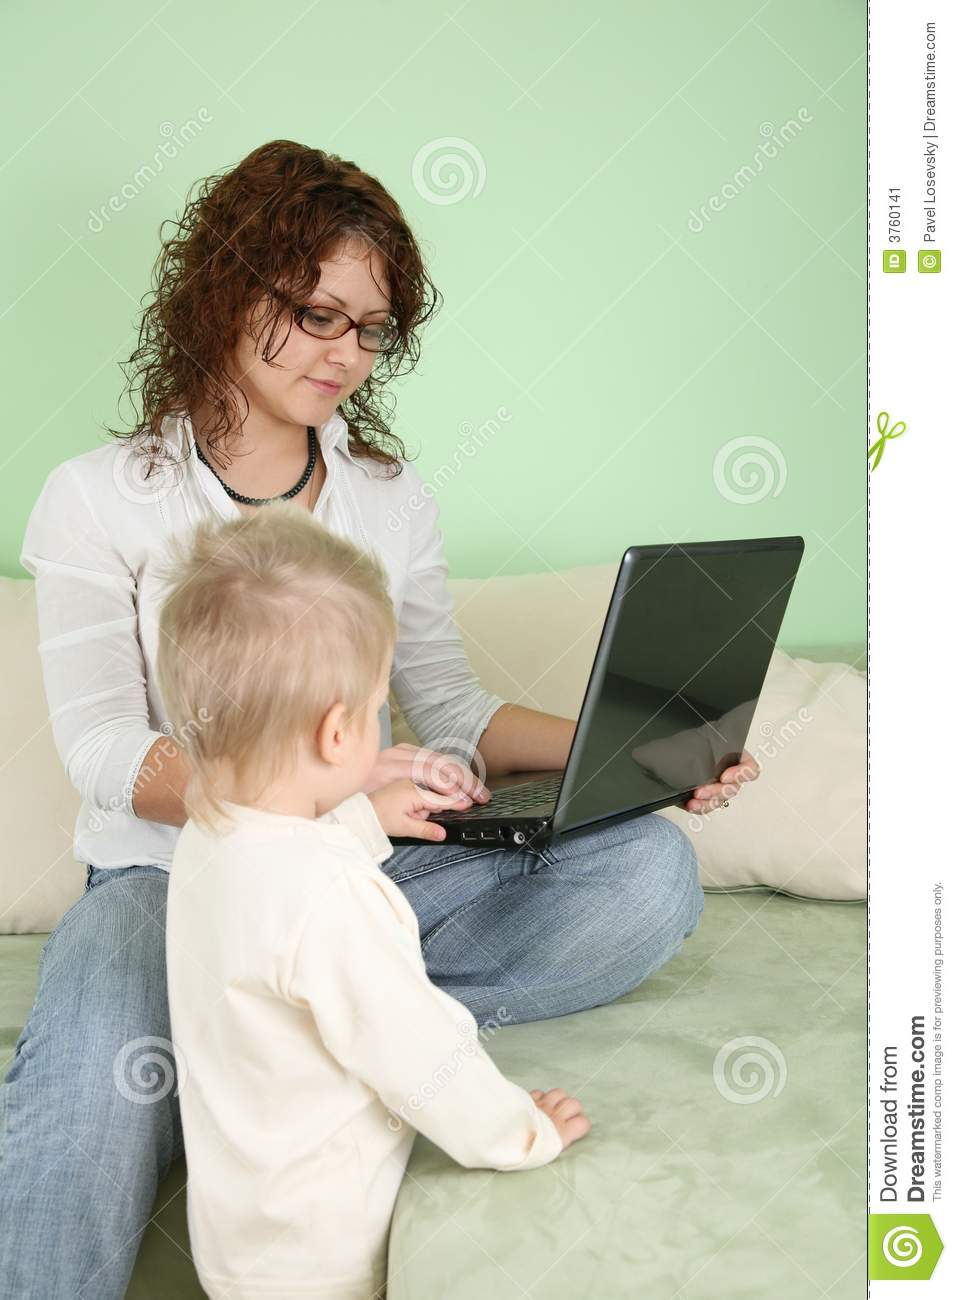 Woman with notebook and child